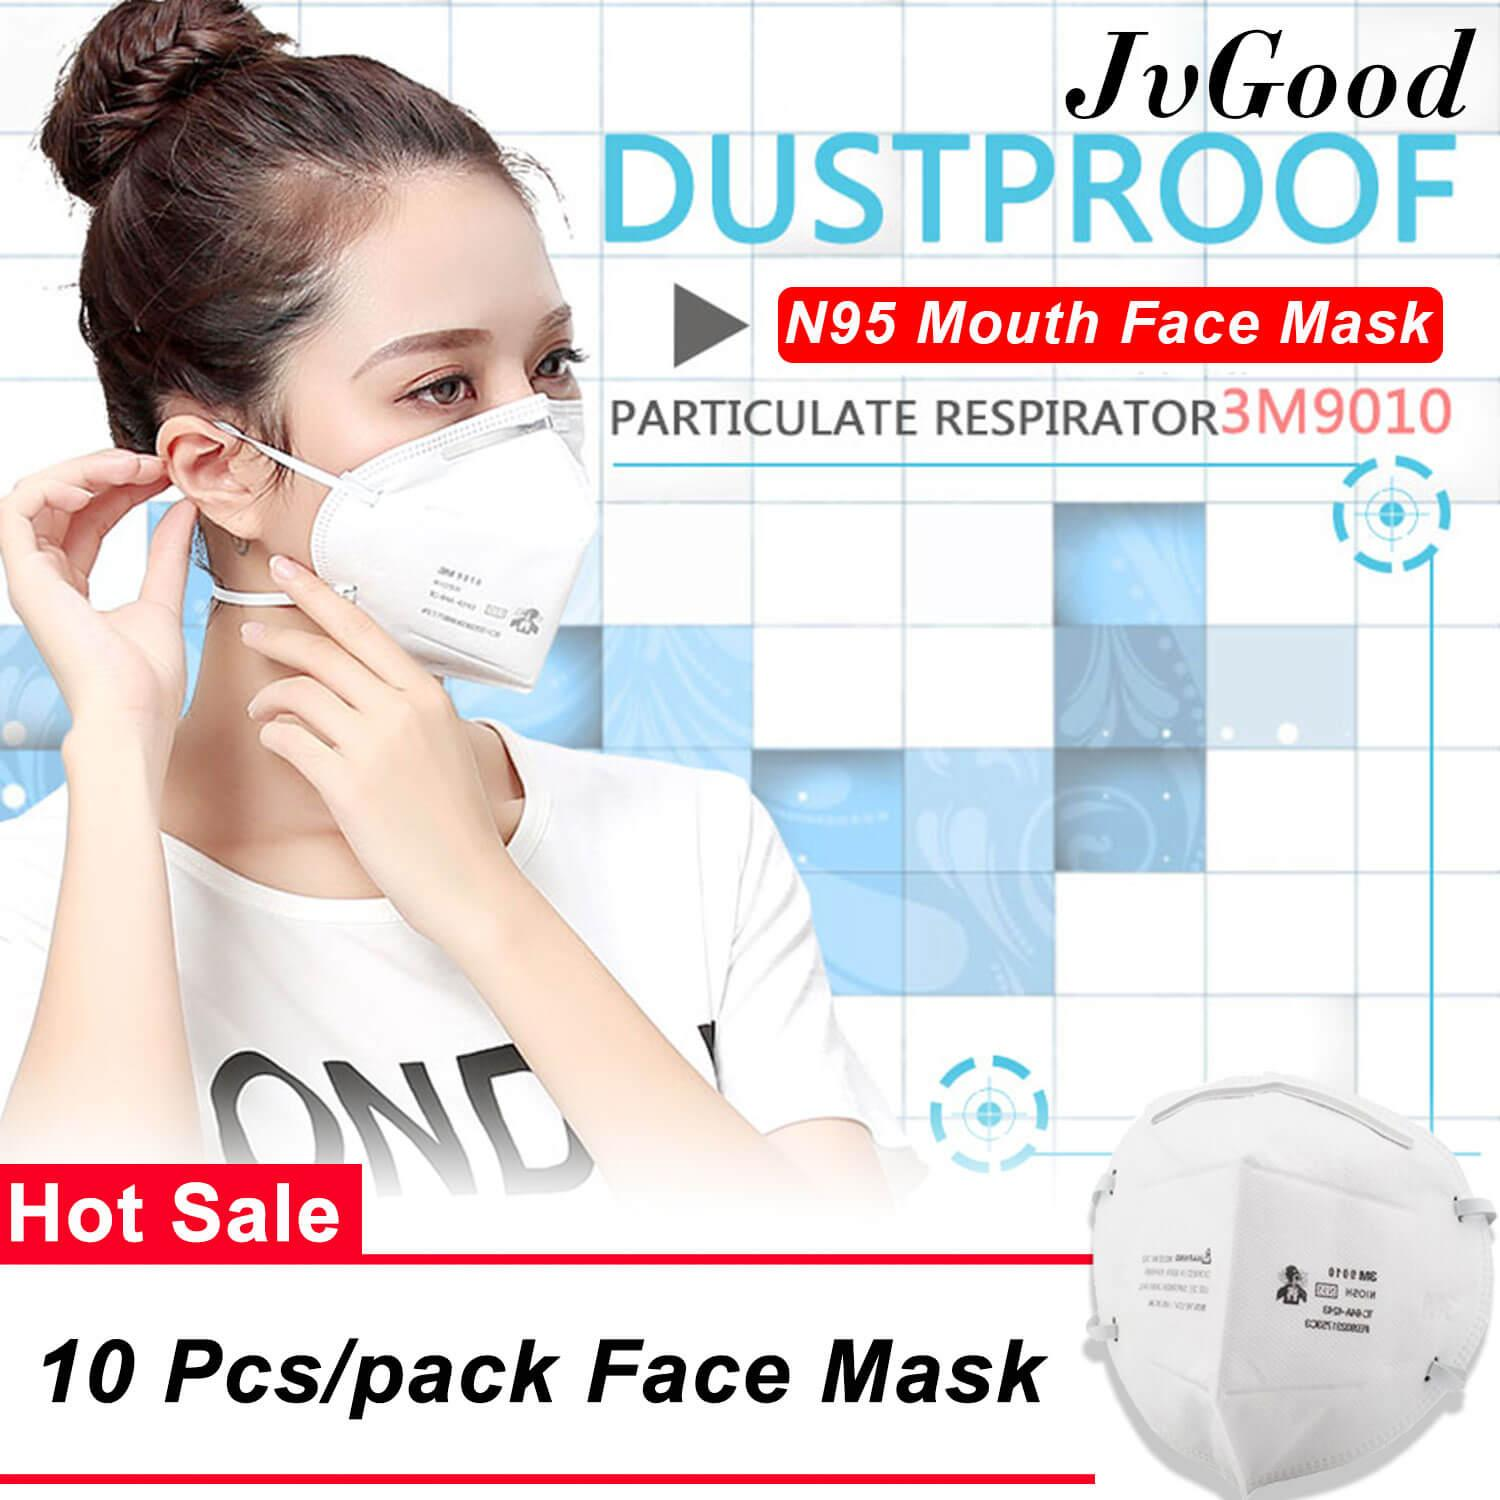 JvGood 10 Pcs/pack 3M 9010 Mouth Face Mask Anti-fog Anti PM 2.5 Respirator Anti Dust Haze Disposable Particulate Mask Respirator N95 Level for Men Women